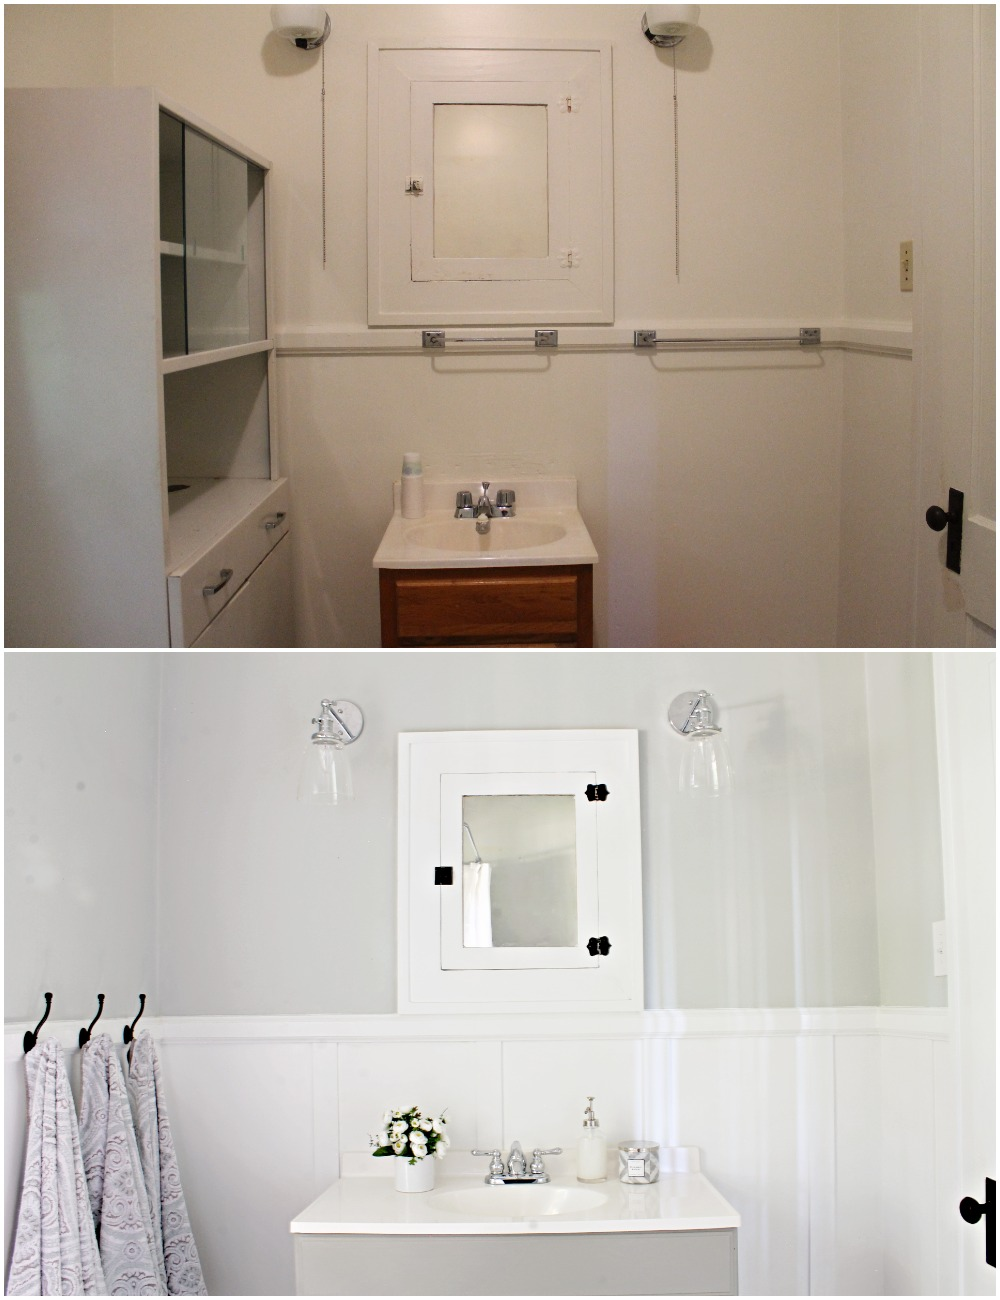 House Flipping Before and After - DIY BUDGET BATHROOM IDEAS (4).jpg